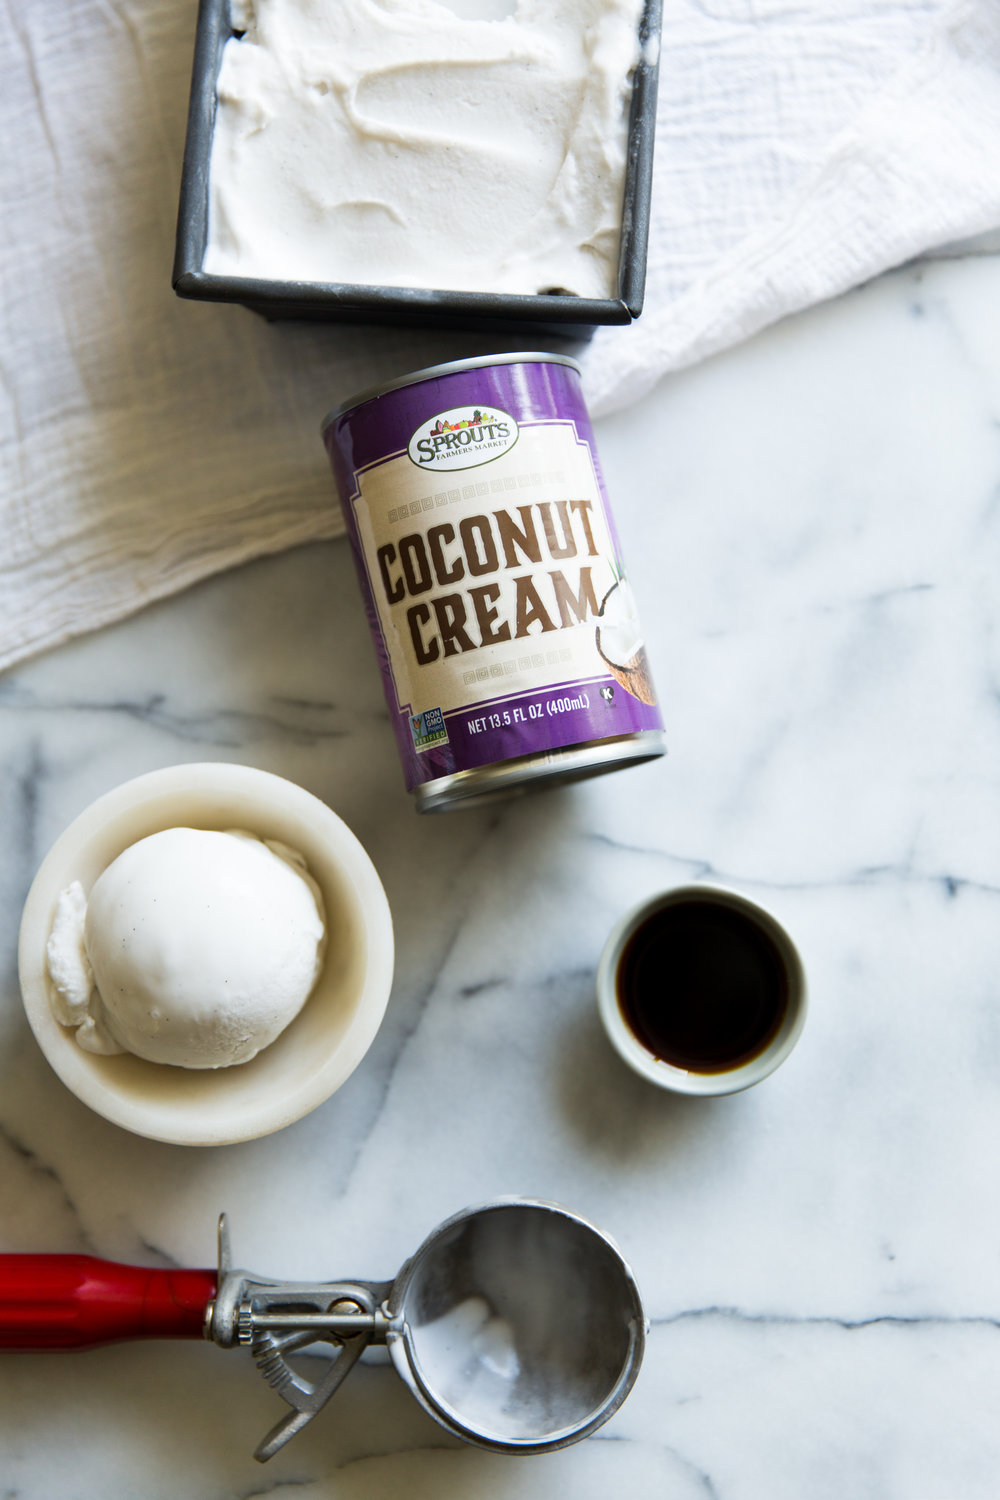 Sprouts Coconut Cream